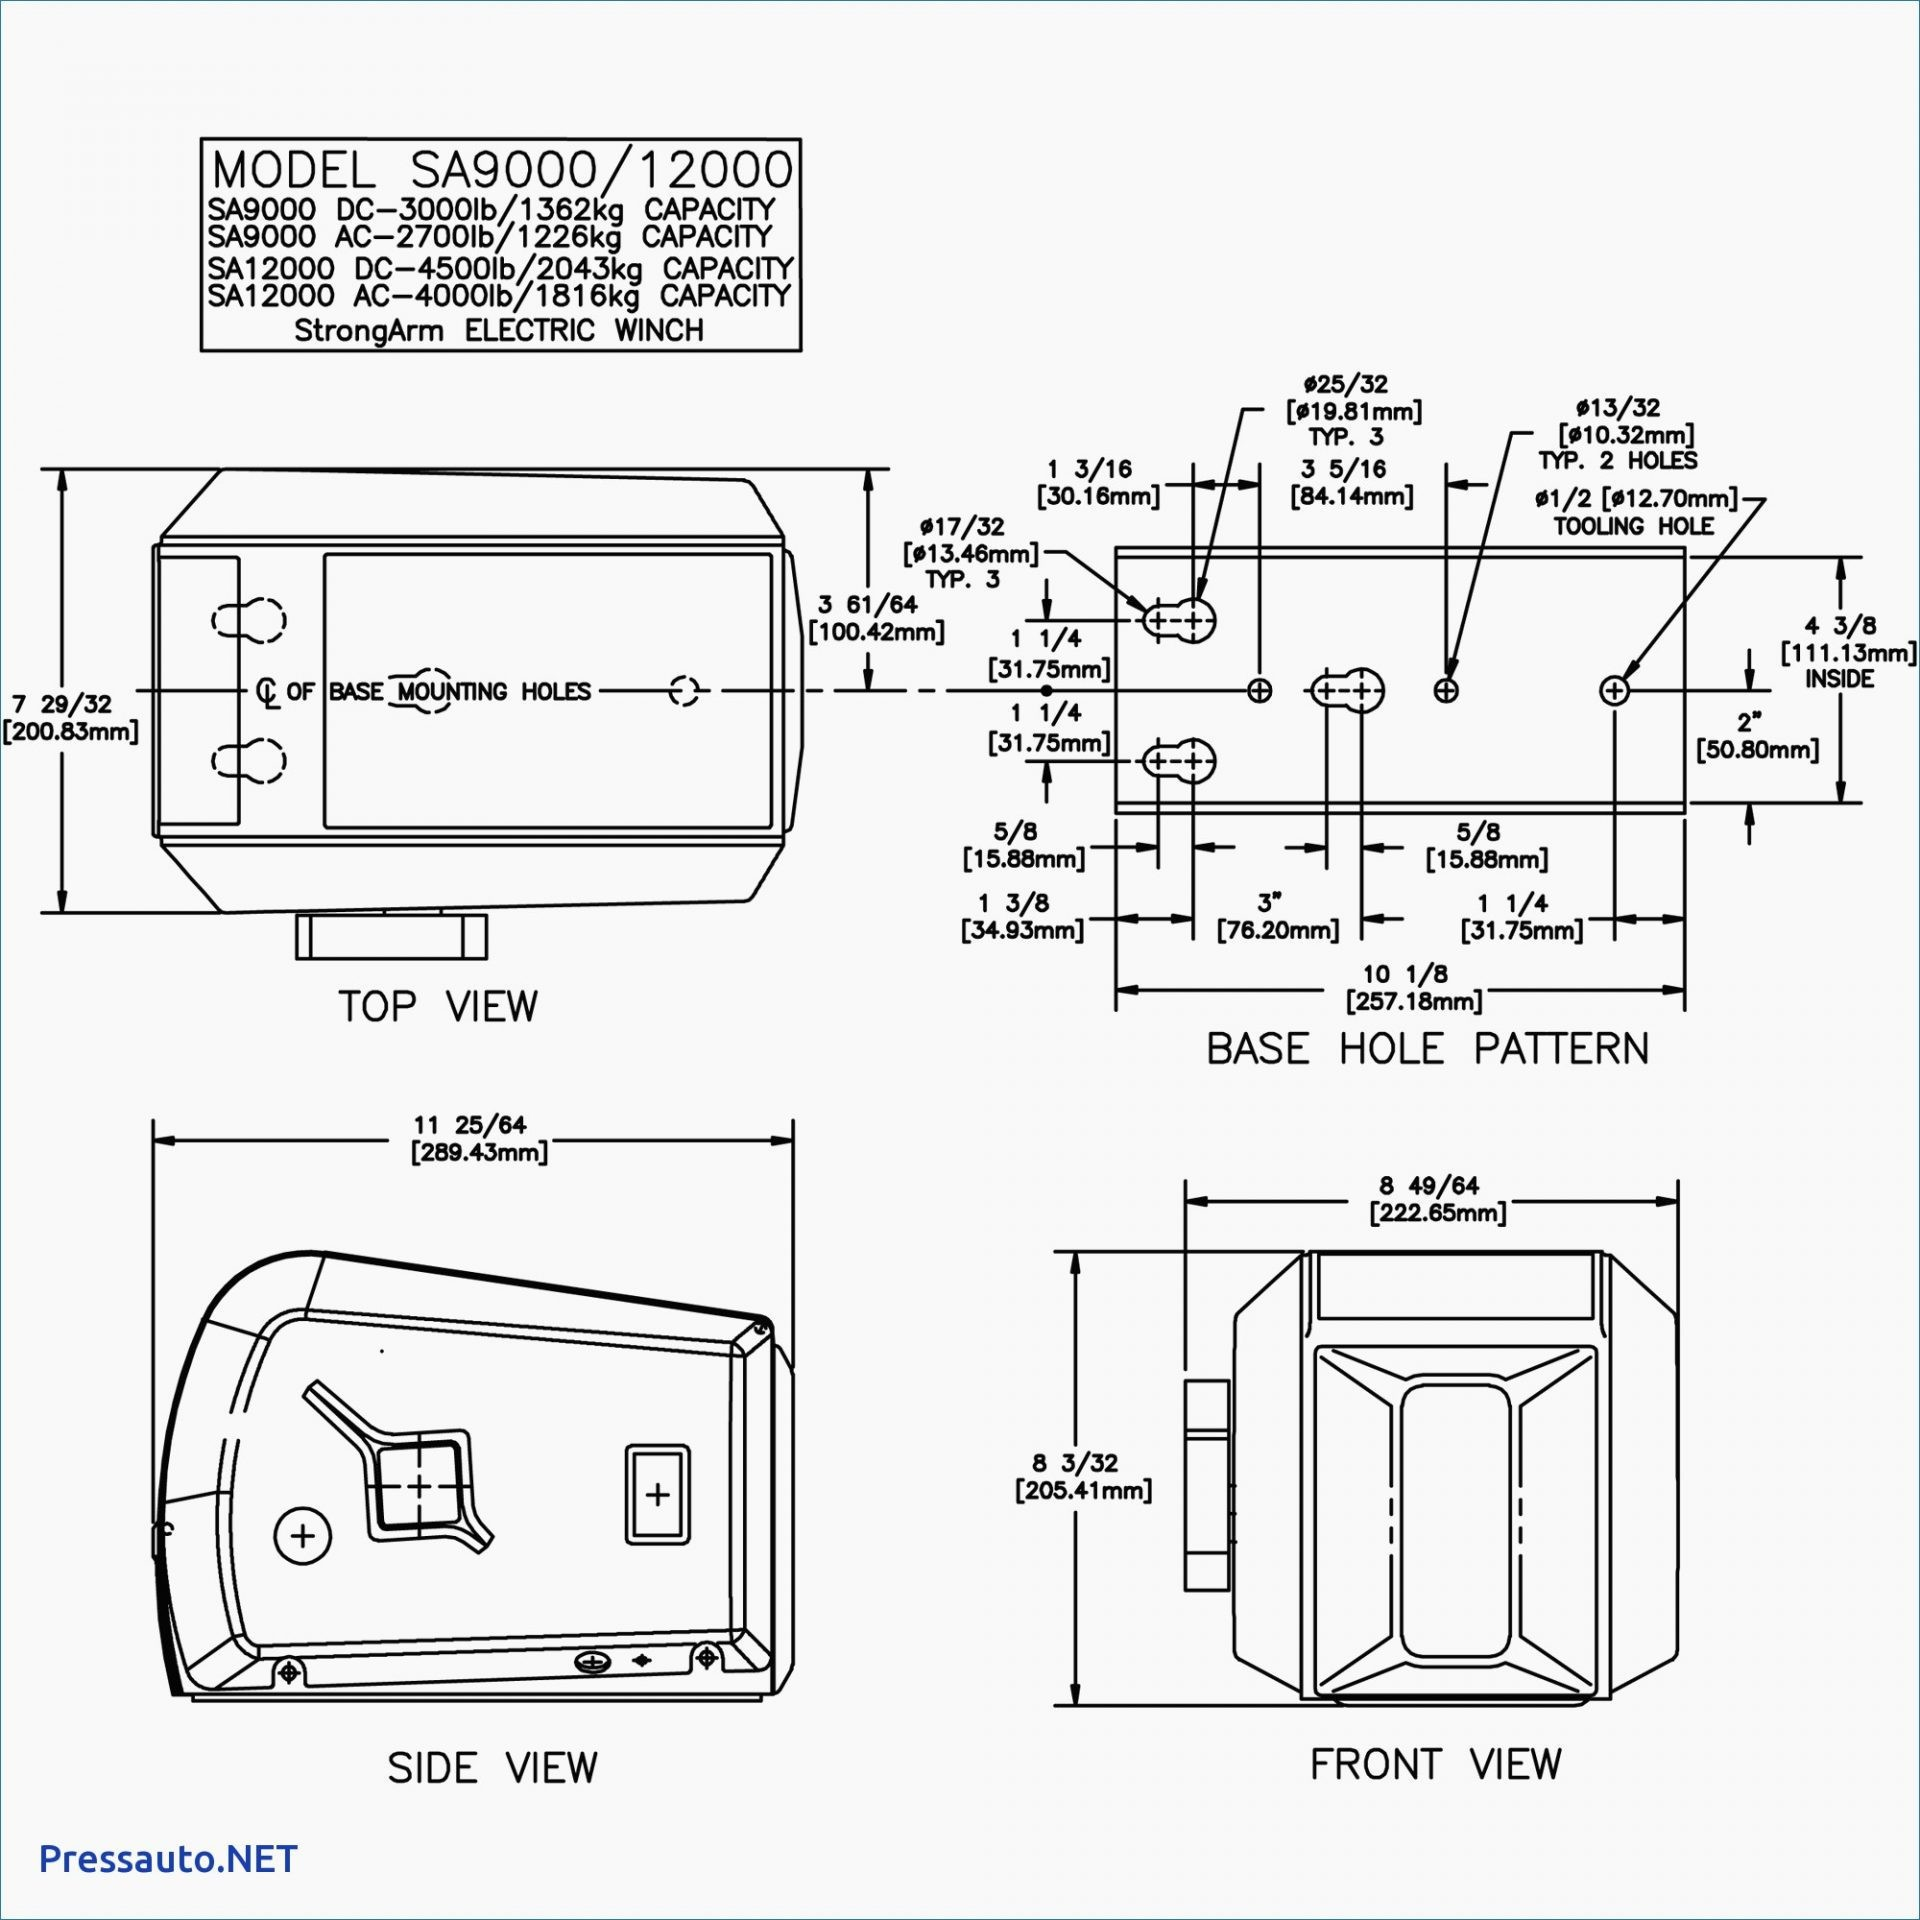 Wiring Diagram for Winch solenoid Refrence Wiring Diagram for Warn Winch Best Winch solenoid Wiring Diagram